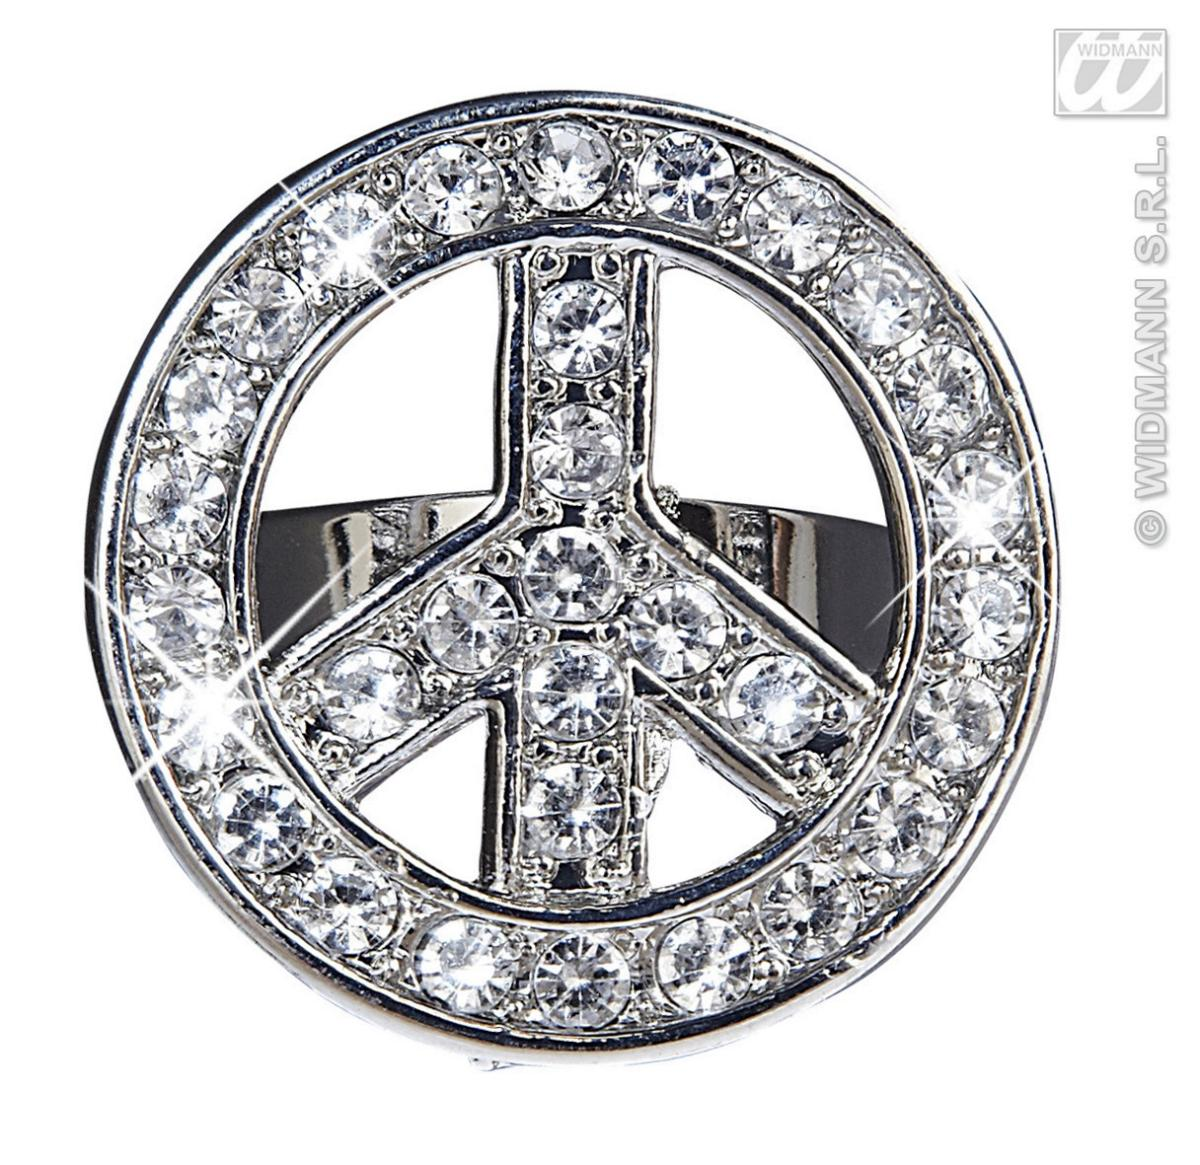 70 er Jahre Peace Ohrclips u. Ring silber Hippie, Flower, Karneval, Motto